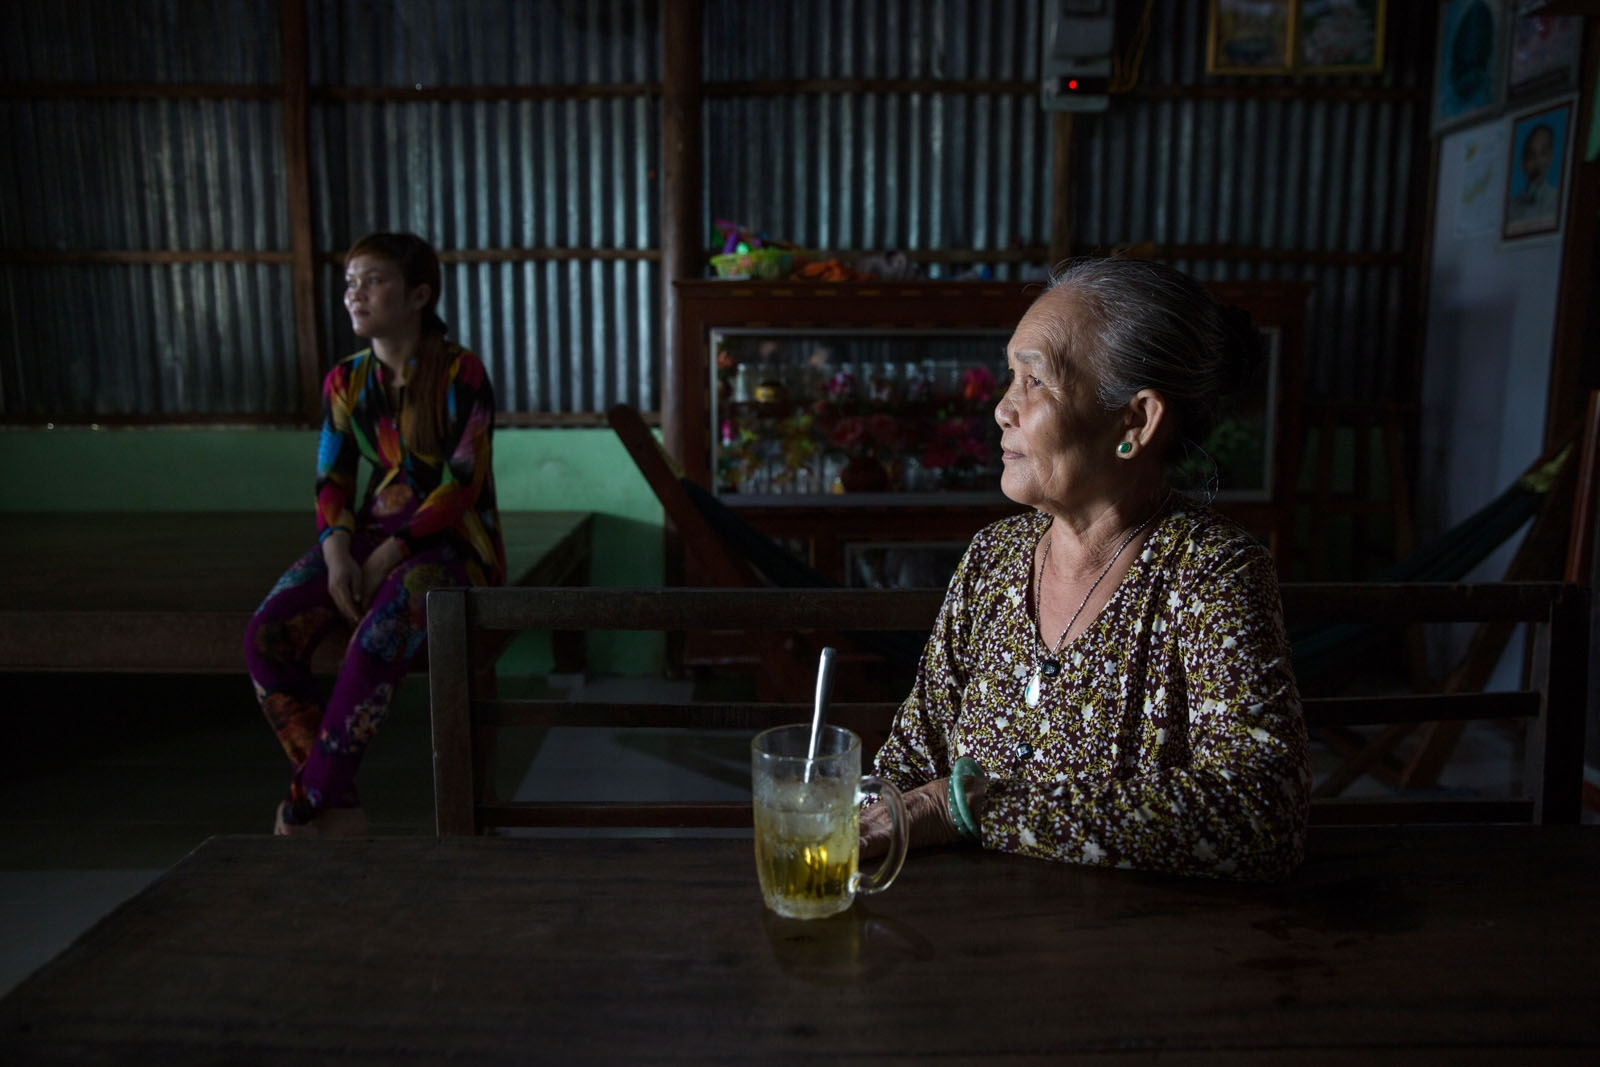 Nguyen Thi Chep, 70, sits in her house with her daughter Than Thi Ut. Both her husband and son were killed when Typhoon Linda devastated Southern Vietnam in 1997 but only the body of her 13 years old son was retrieved, her husband's body was never found. Believed to be the worst typhoon in at least one hundred years to hit Vietnam, thousands were killed and huge areas completely destroyed. Her family were fisherman living in Song Doc town that is one of the most remote communities in the Delta. After the Typhoon hit Red Cross workers had to travel by riverboat to bring aid to the 150,000 most affected people, due to the lack of roads.